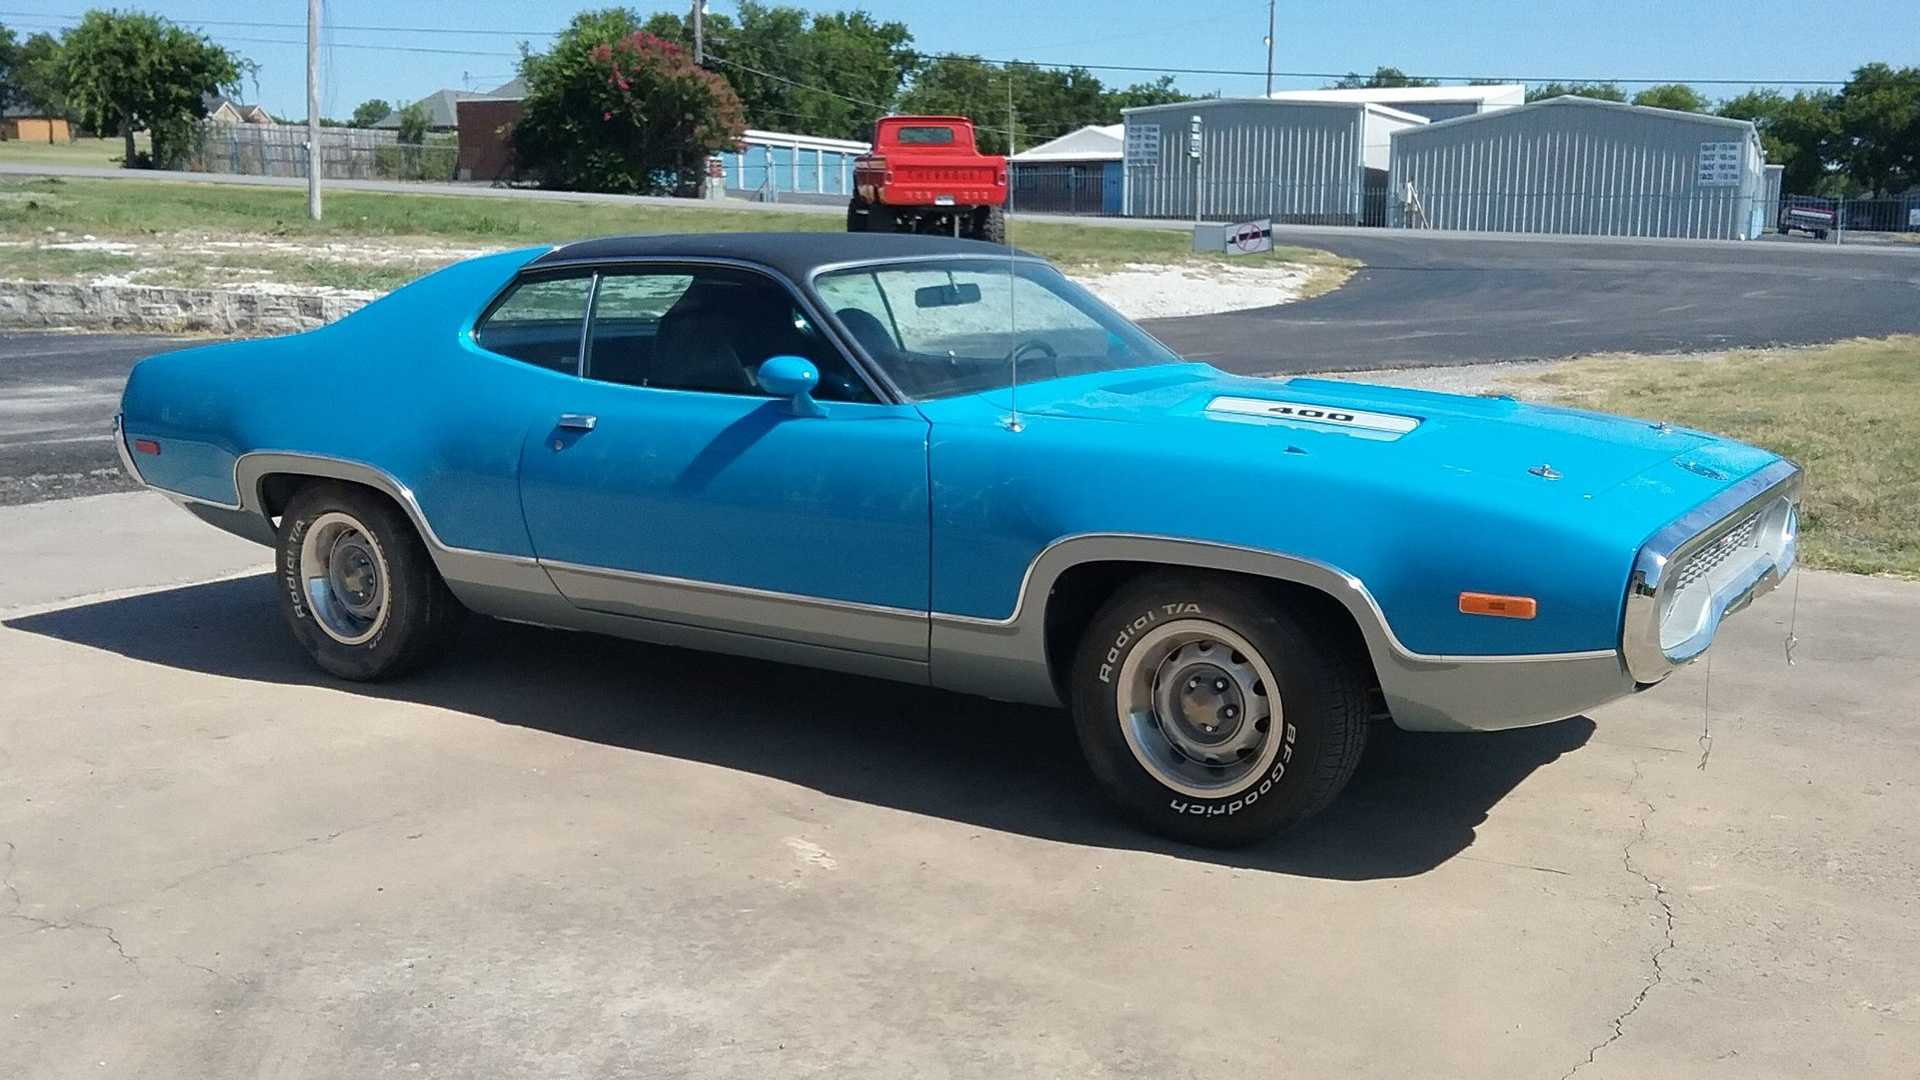 Fly Under The Radar In This 1972 Plymouth Satellite Sebring